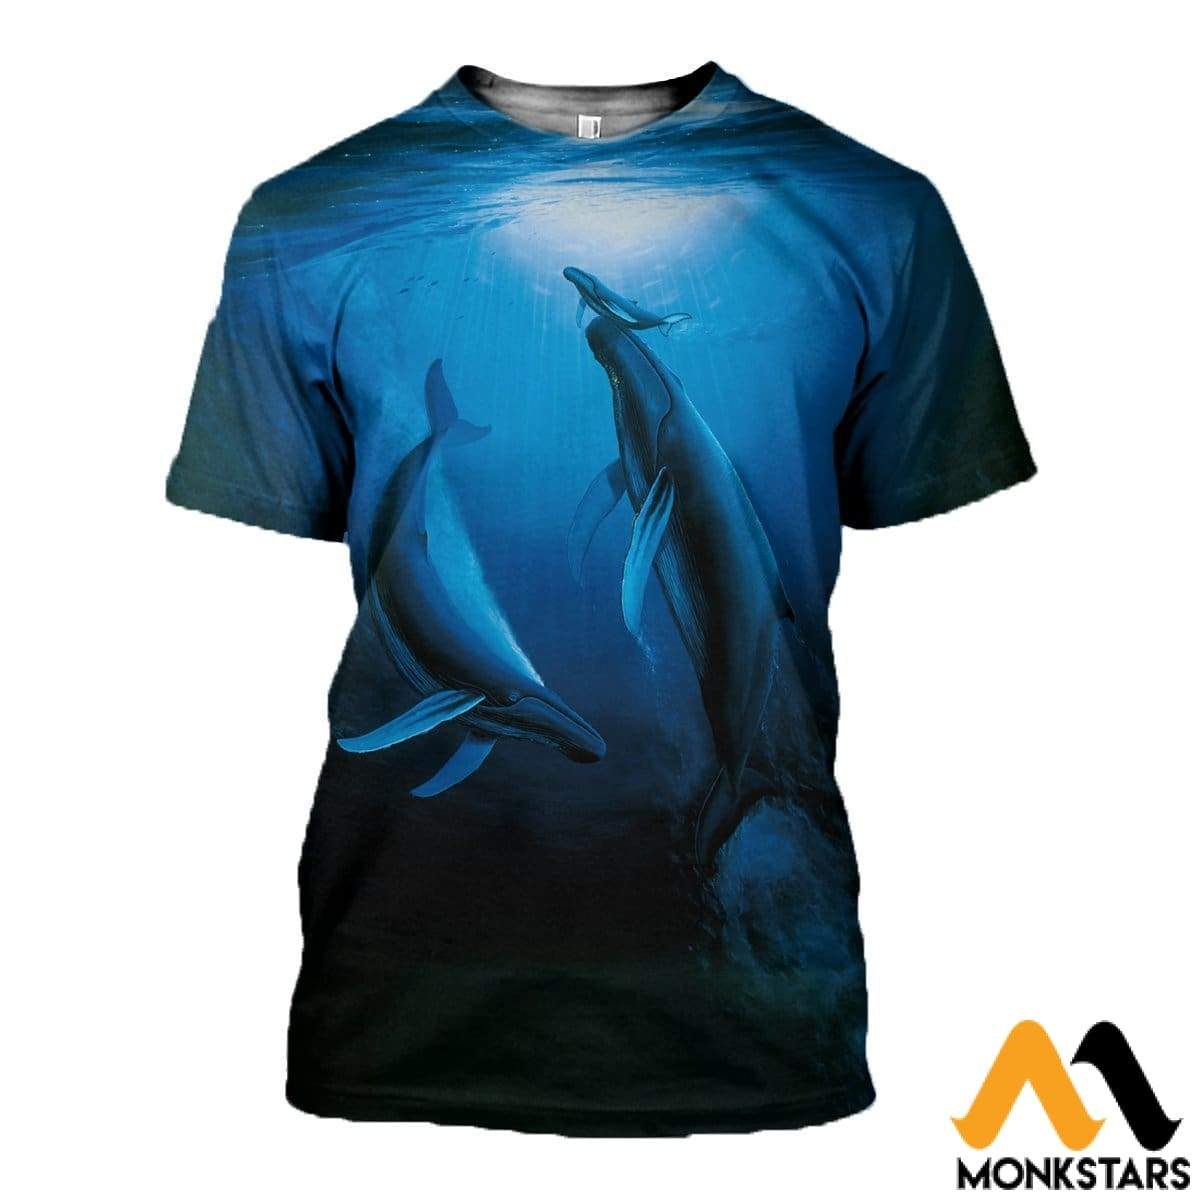 3d All Over Printed Whale Clothes Monkstars Inc